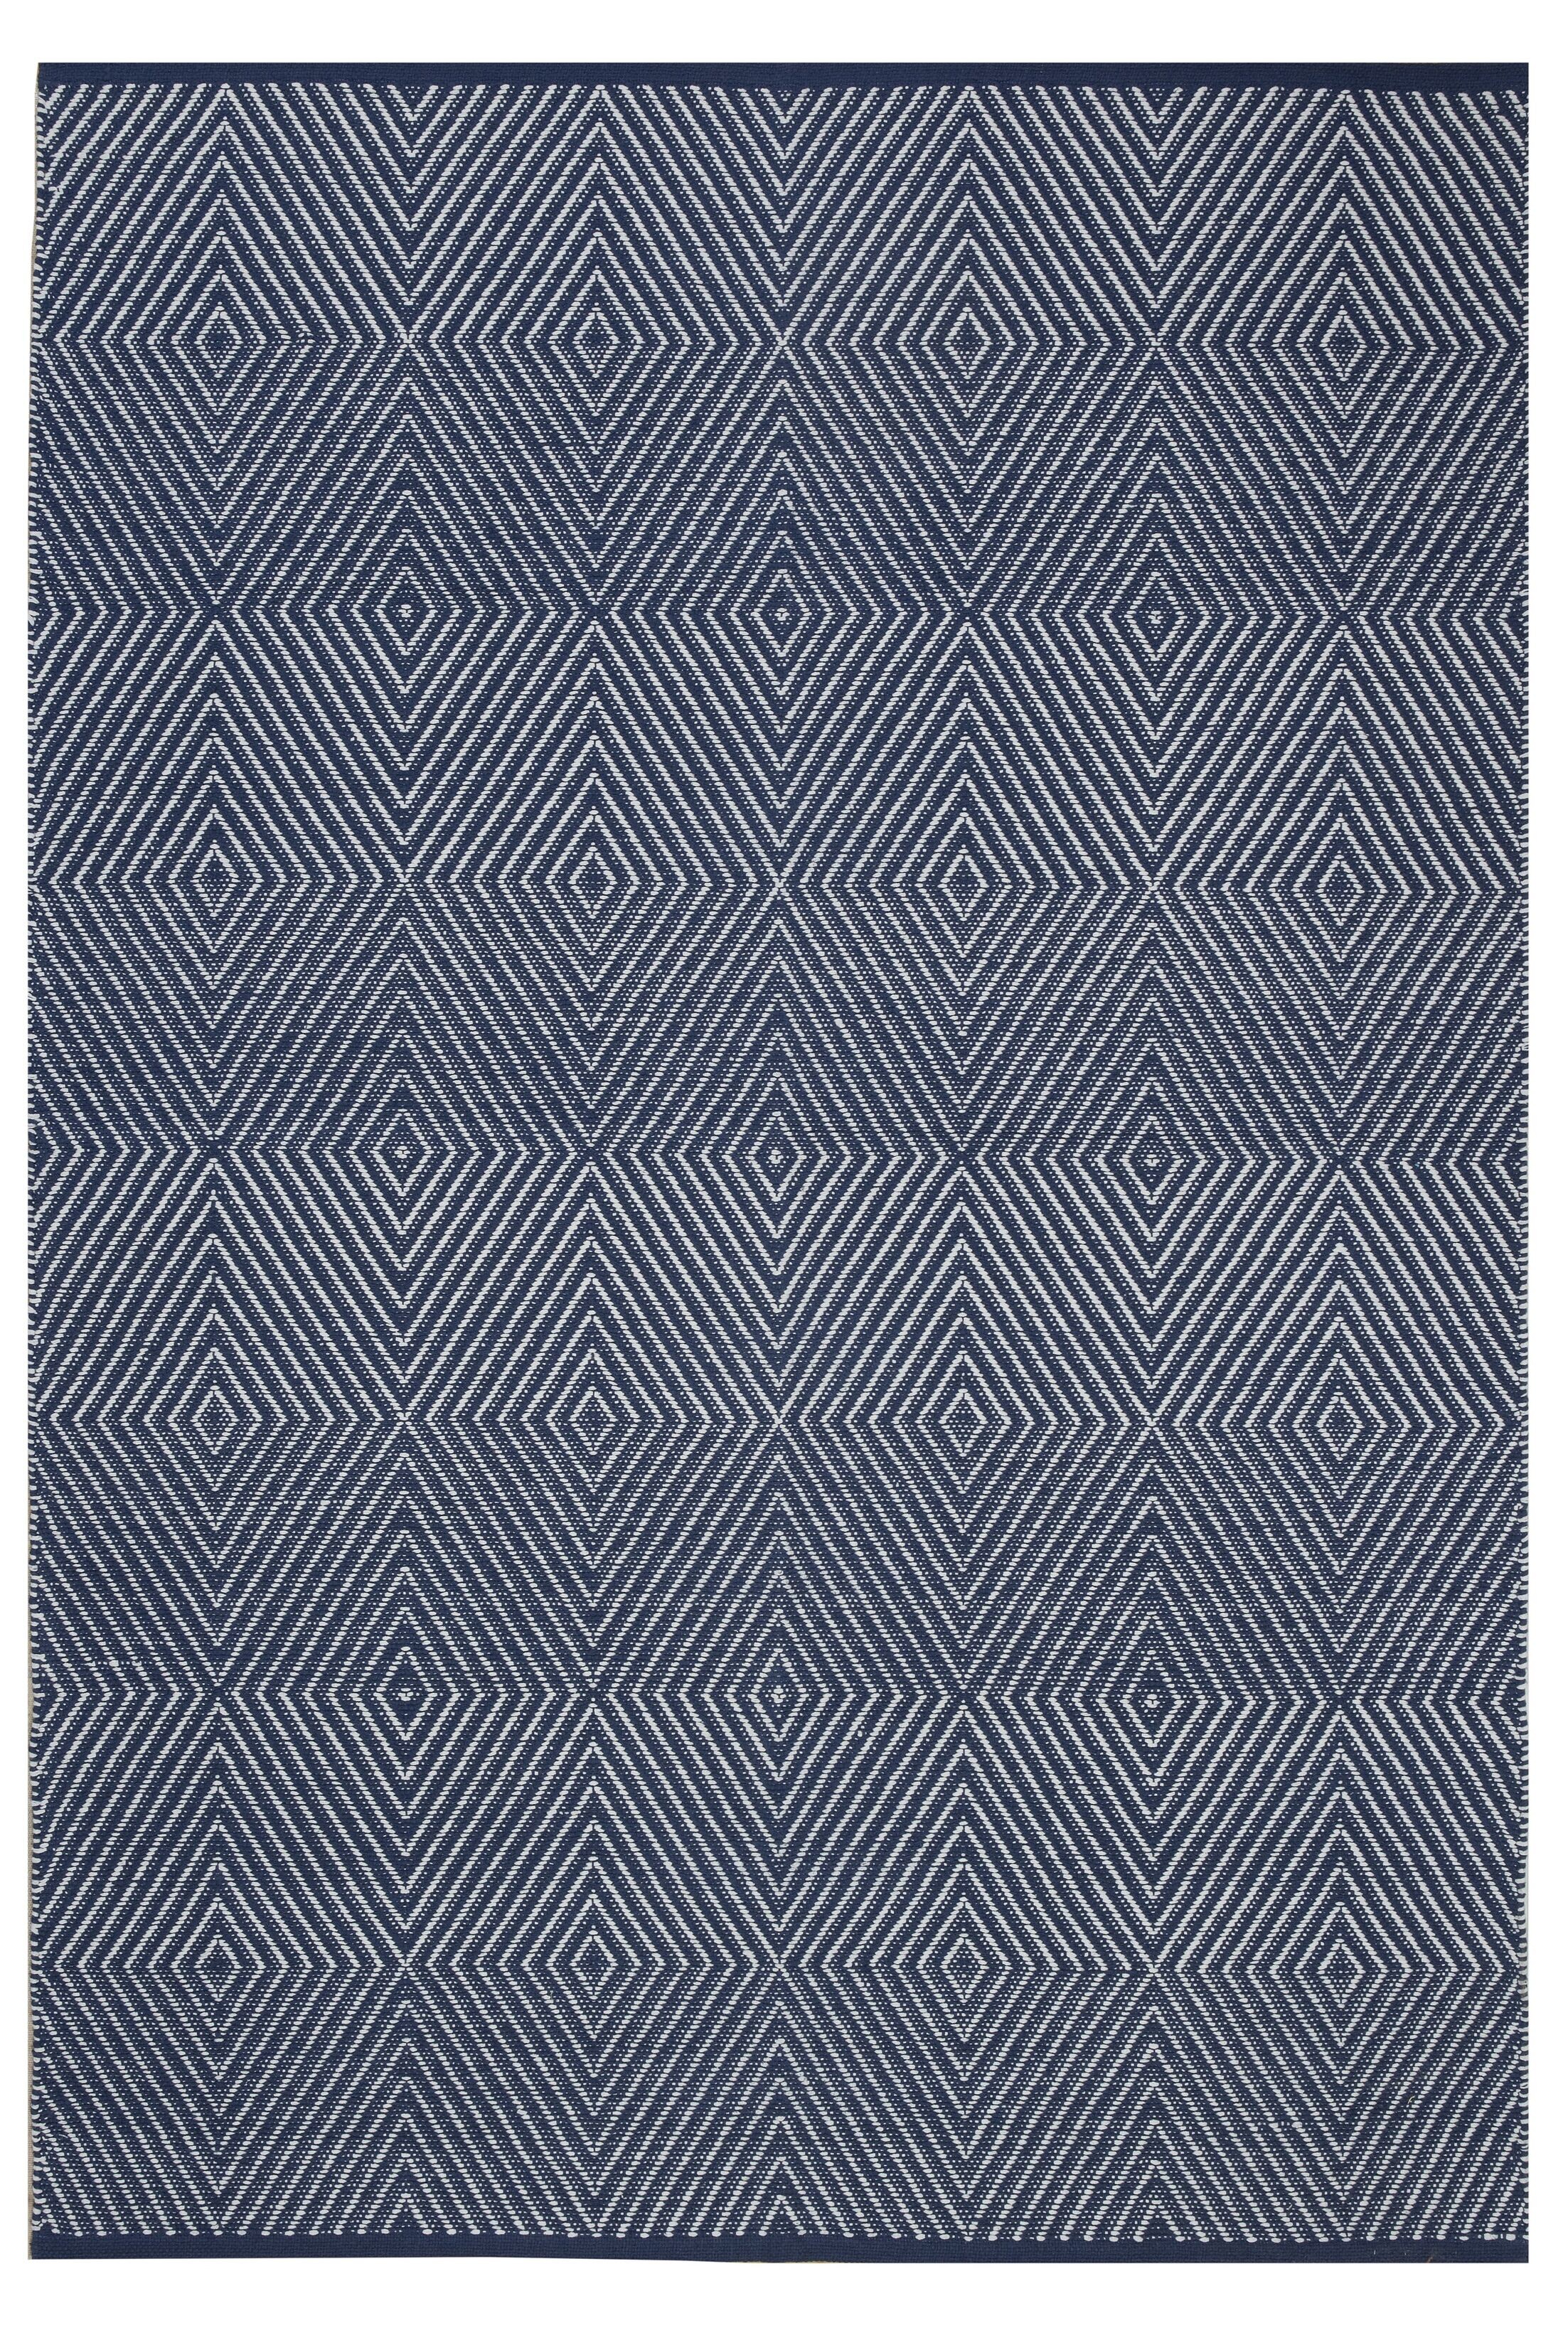 Criswell Hand-Woven Cotton Dark Blue Area Rug Rug Size: Rectangle 6' x 9'